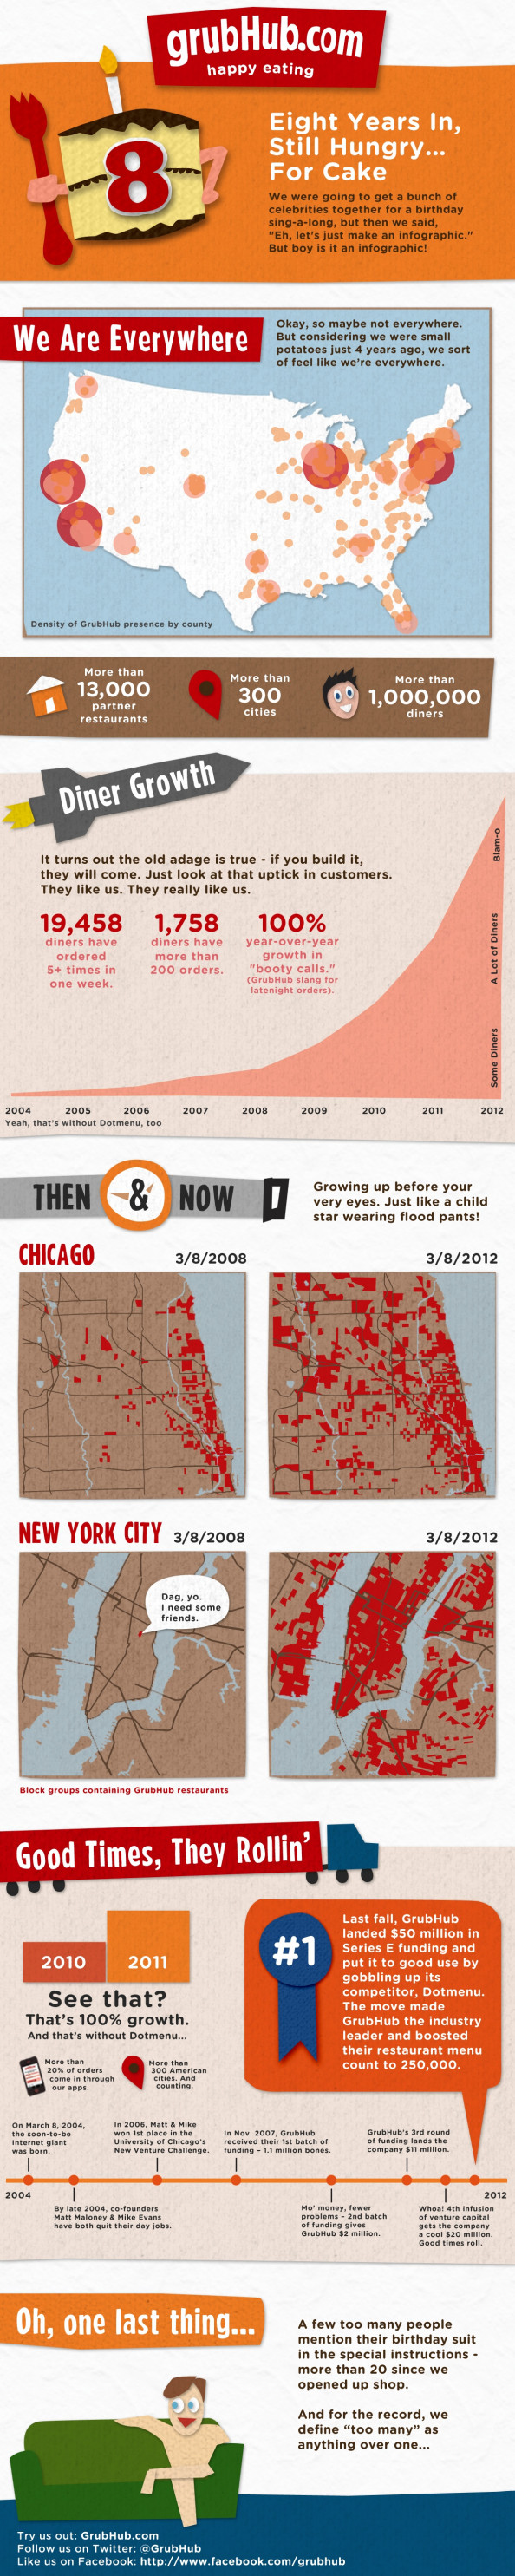 GrubHub's 8th B-day Growth Infographic